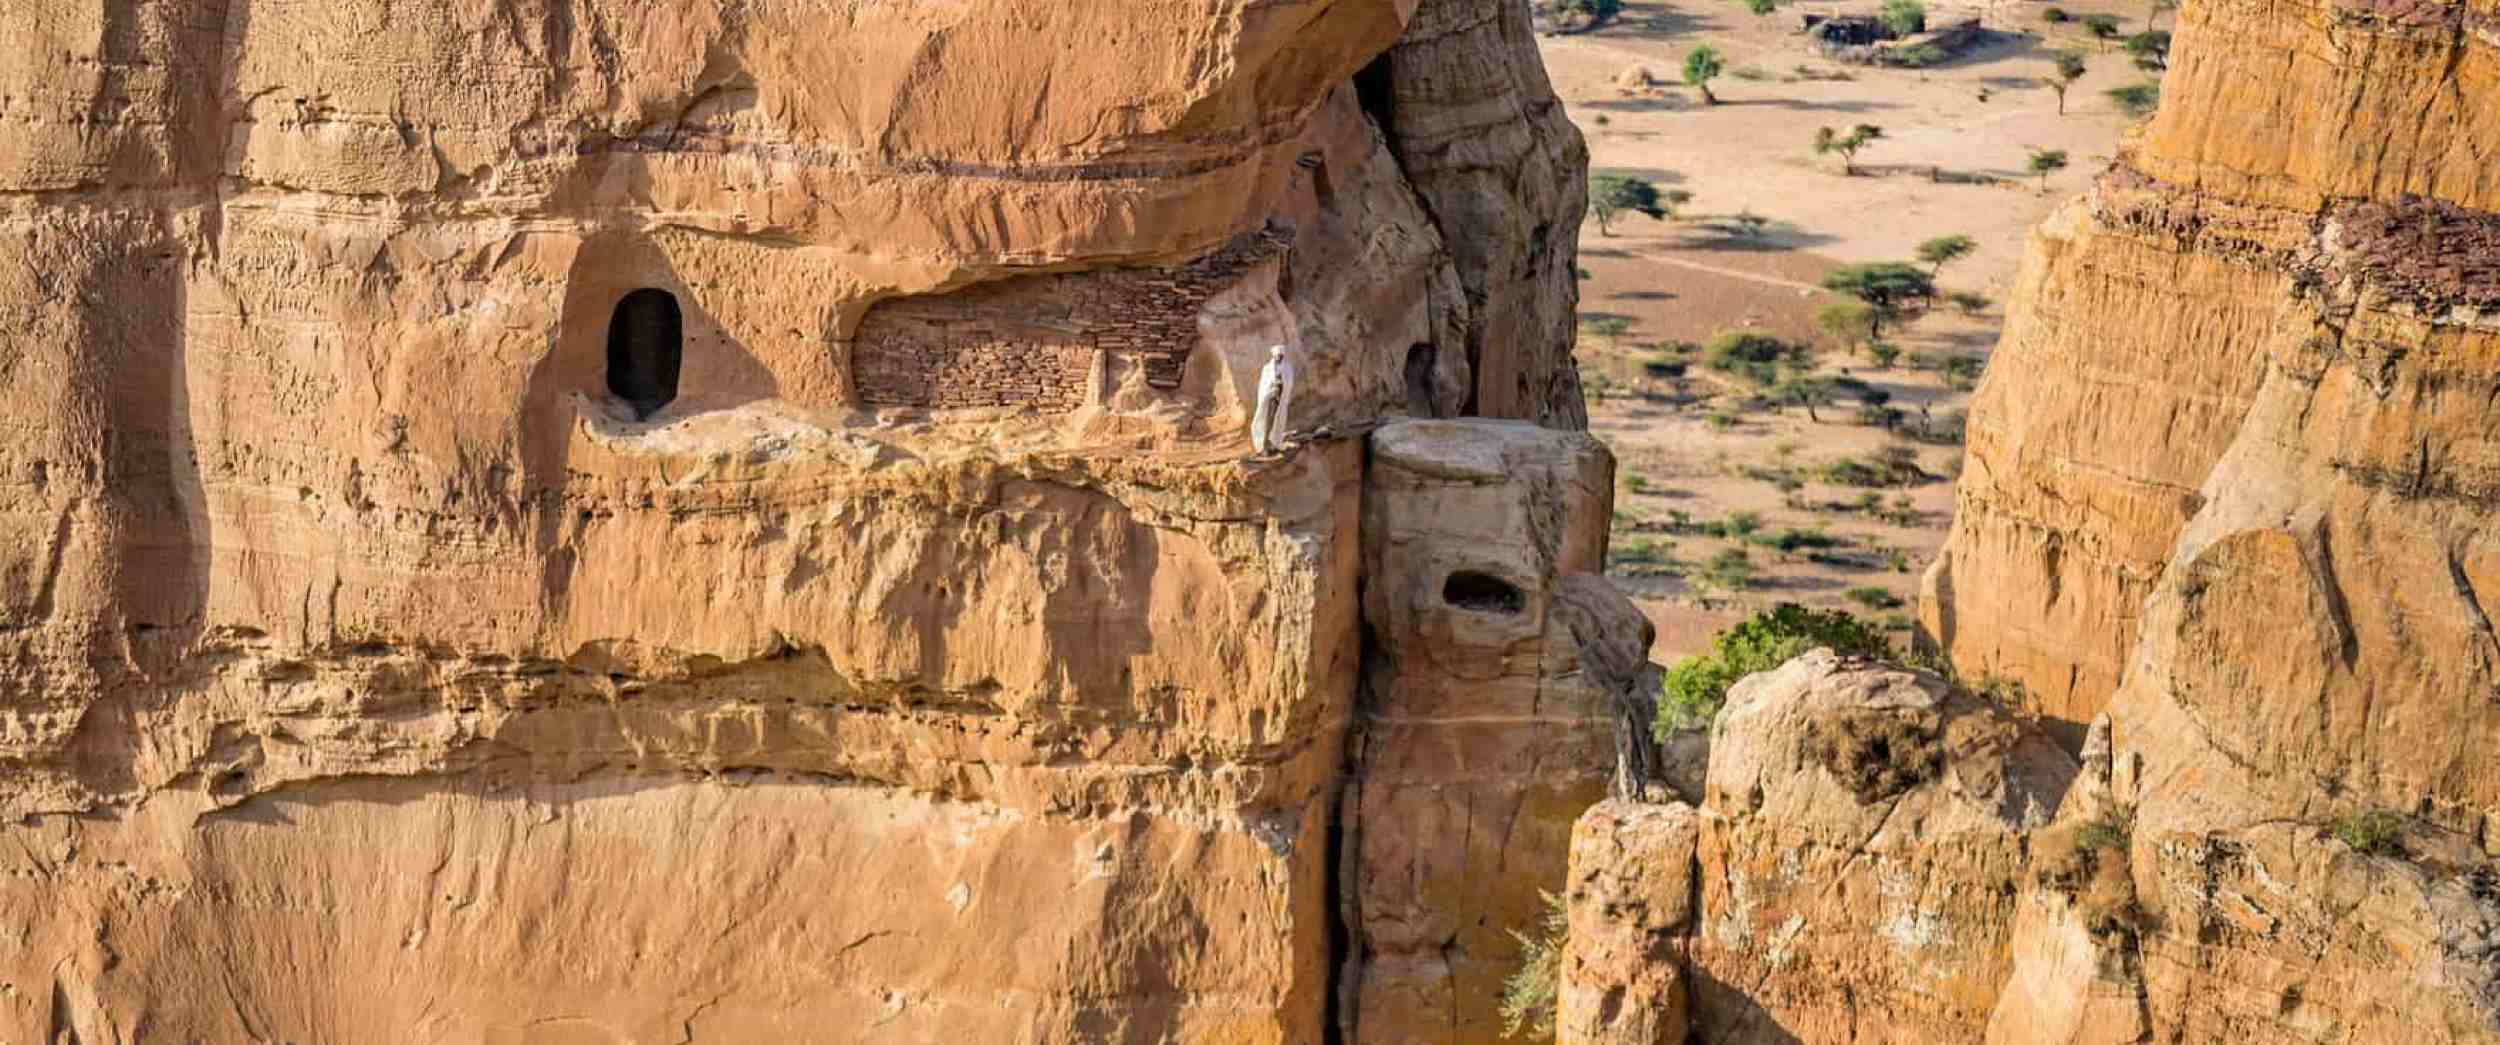 Undiscovered Ethiopia: Abuna Yemata Guh in Tigray - An aerial shot of Abuna Yemata Guh by the Guardian